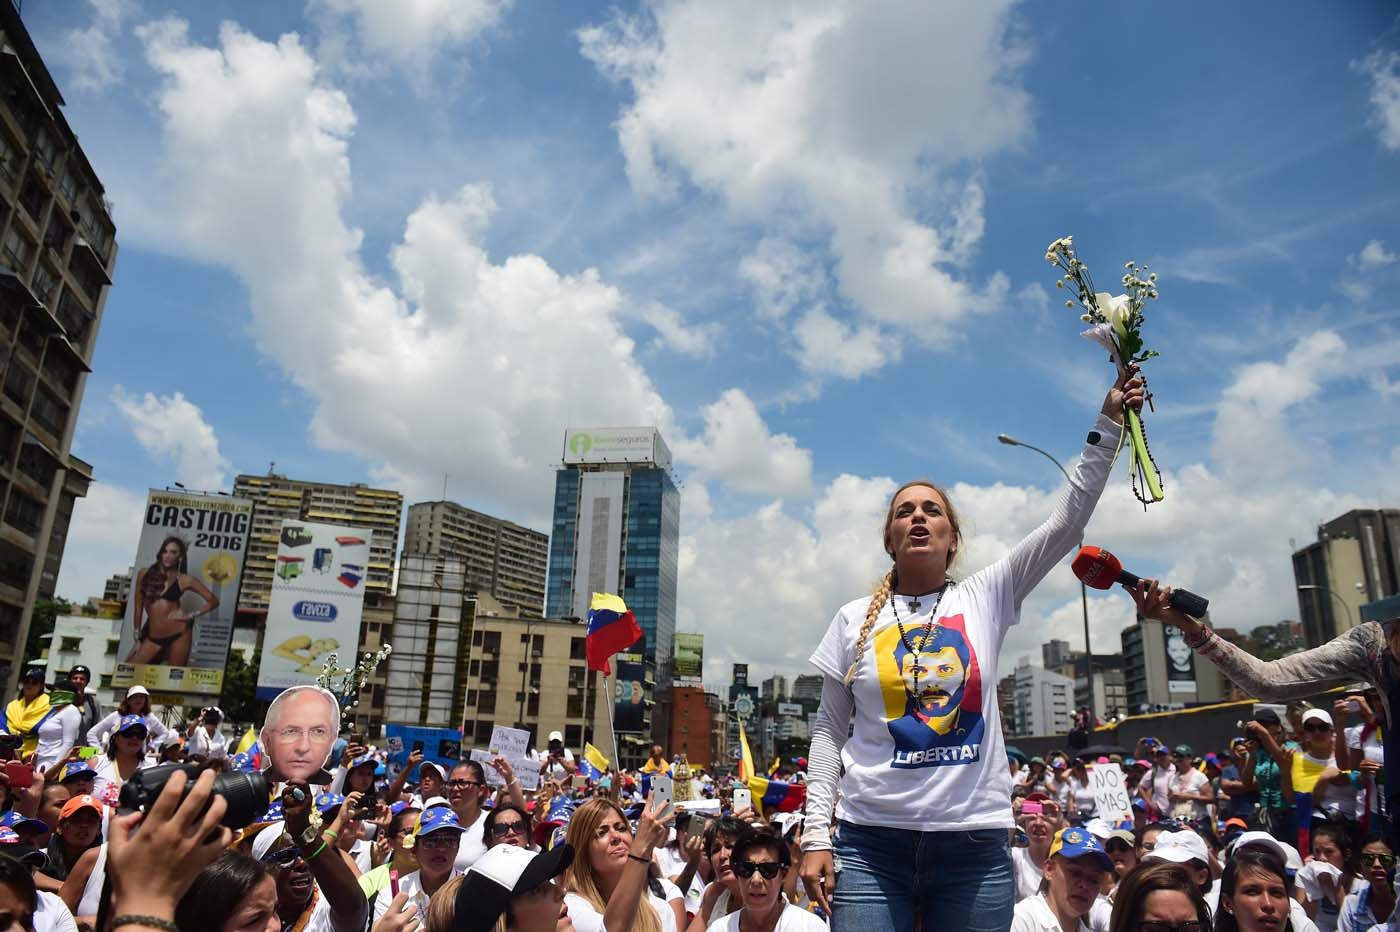 The wife of imprisoned opposition leader Leopoldo Lopez, Lilian Tintori, takes part in a women's march aimed to keep pressure on President Nicolas Maduro, whose authority is being increasingly challenged by protests and deadly unrest, in Caracas on May 6, 2017. The death toll since April, when the protests intensified after Maduro's administration and the courts stepped up efforts to undermine the opposition, is at least 36 according to prosecutors. / AFP PHOTO / RONALDO SCHEMIDT